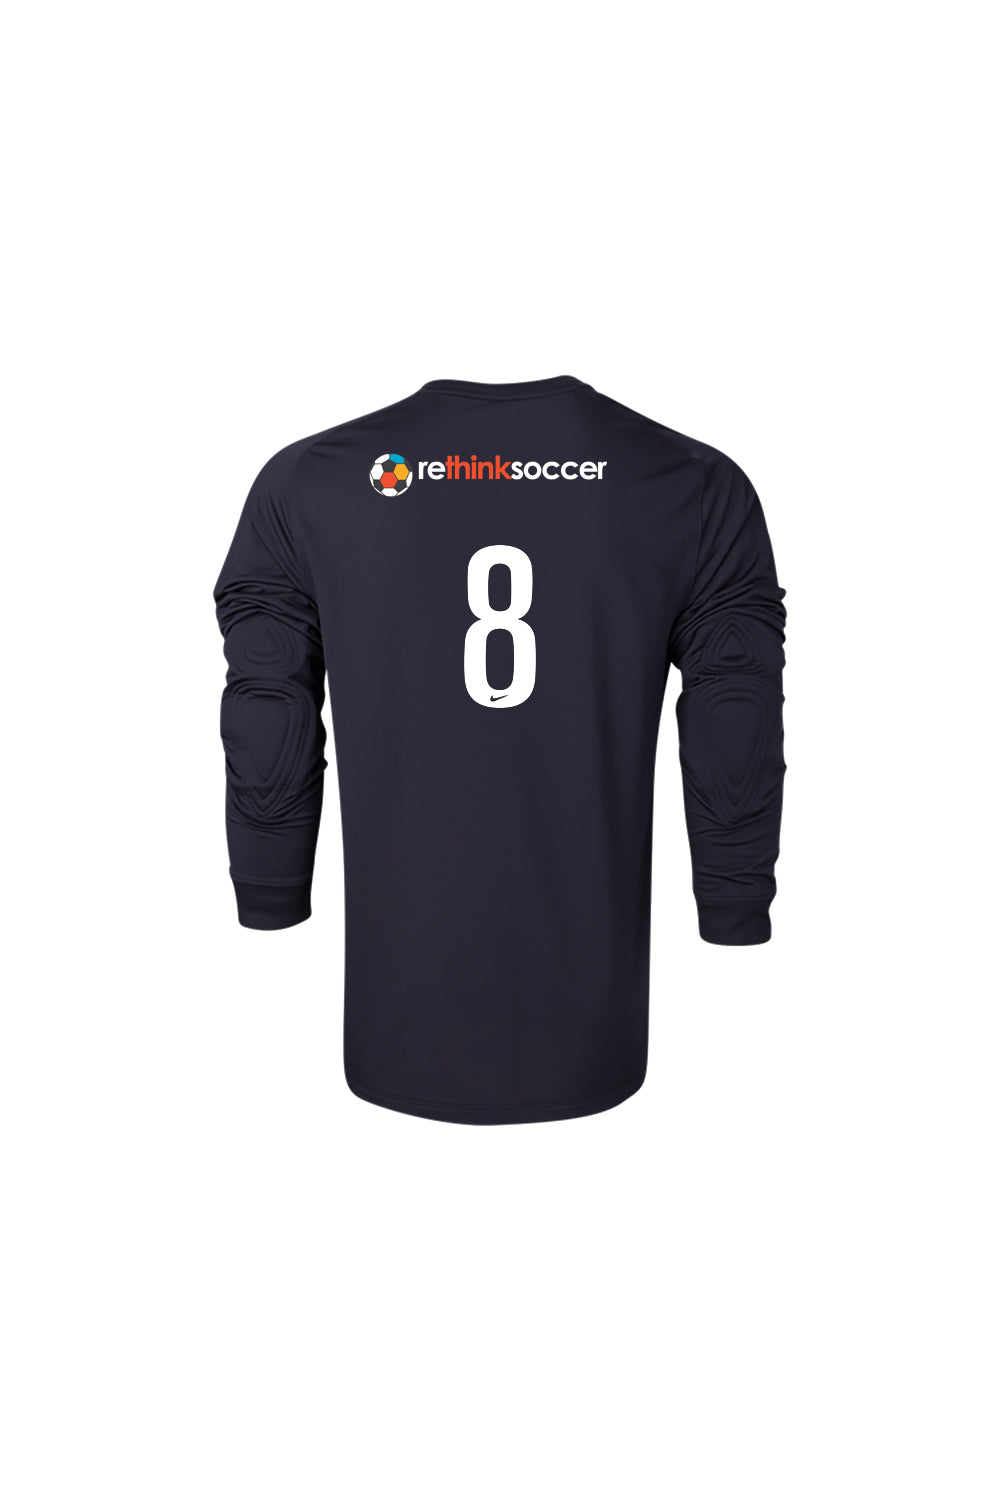 47270dfeb Kingdom Premier Goalie Jersey - Black – Gazelle Sports Soccer